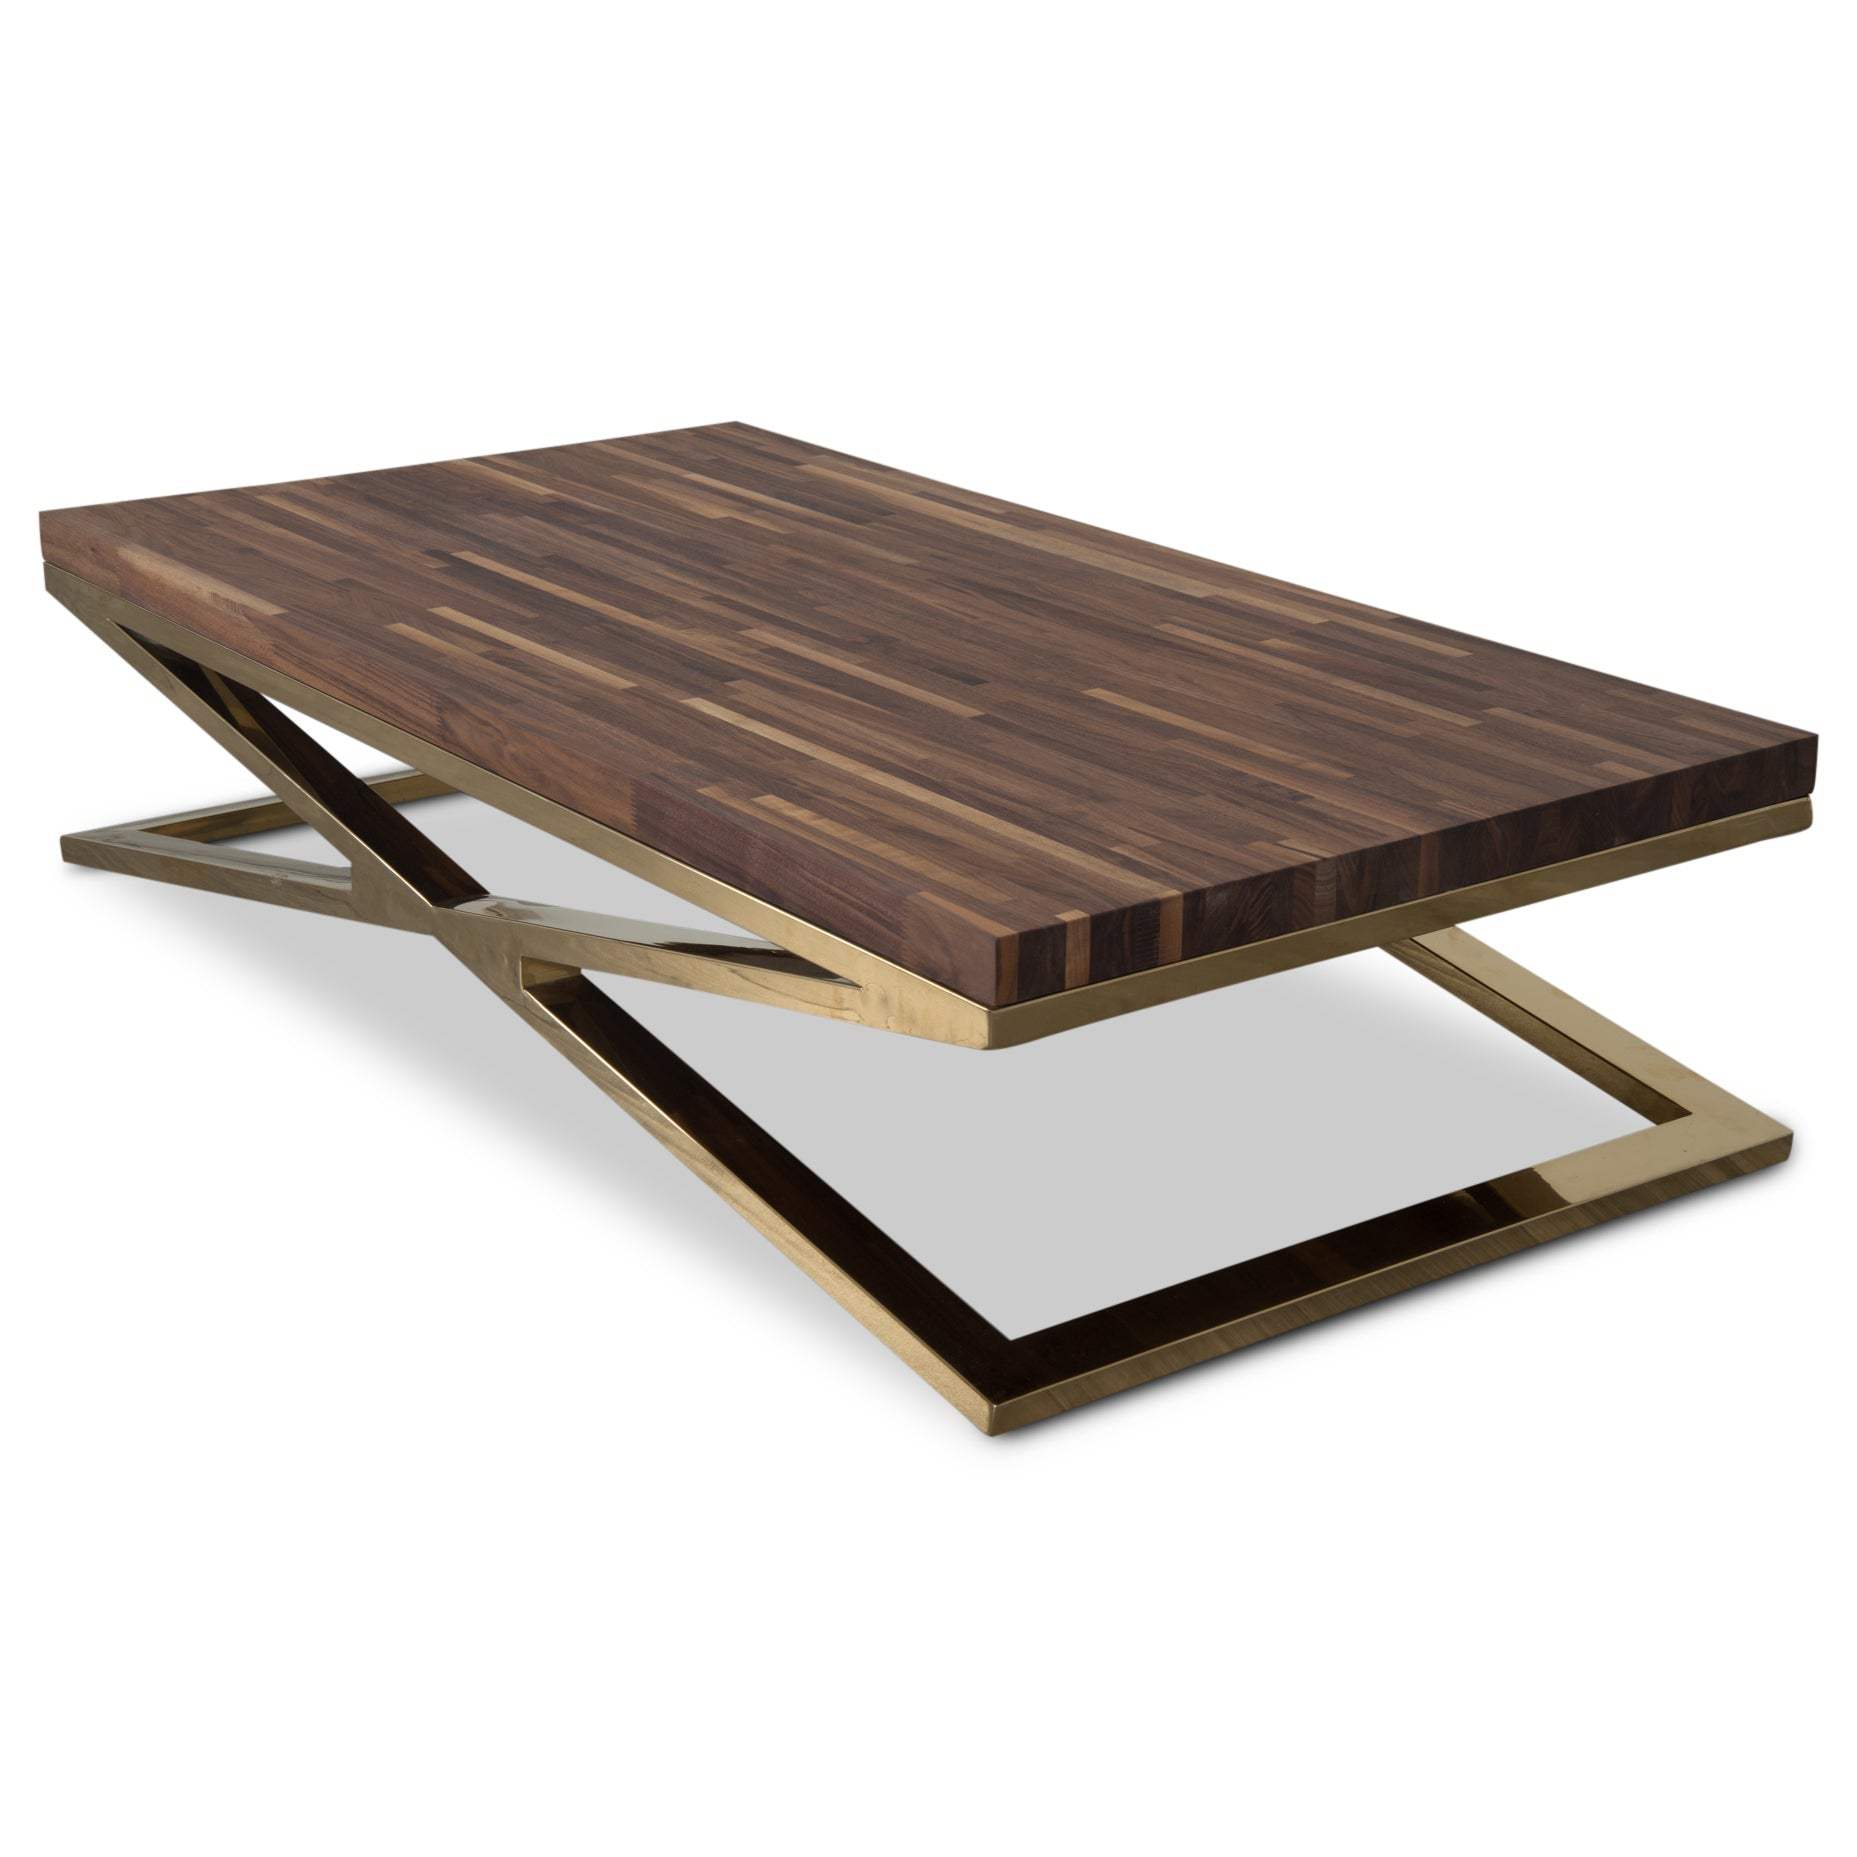 Superieur ... X Leg Coffee Table With Solid Walnut Top   ModShop1.com ...